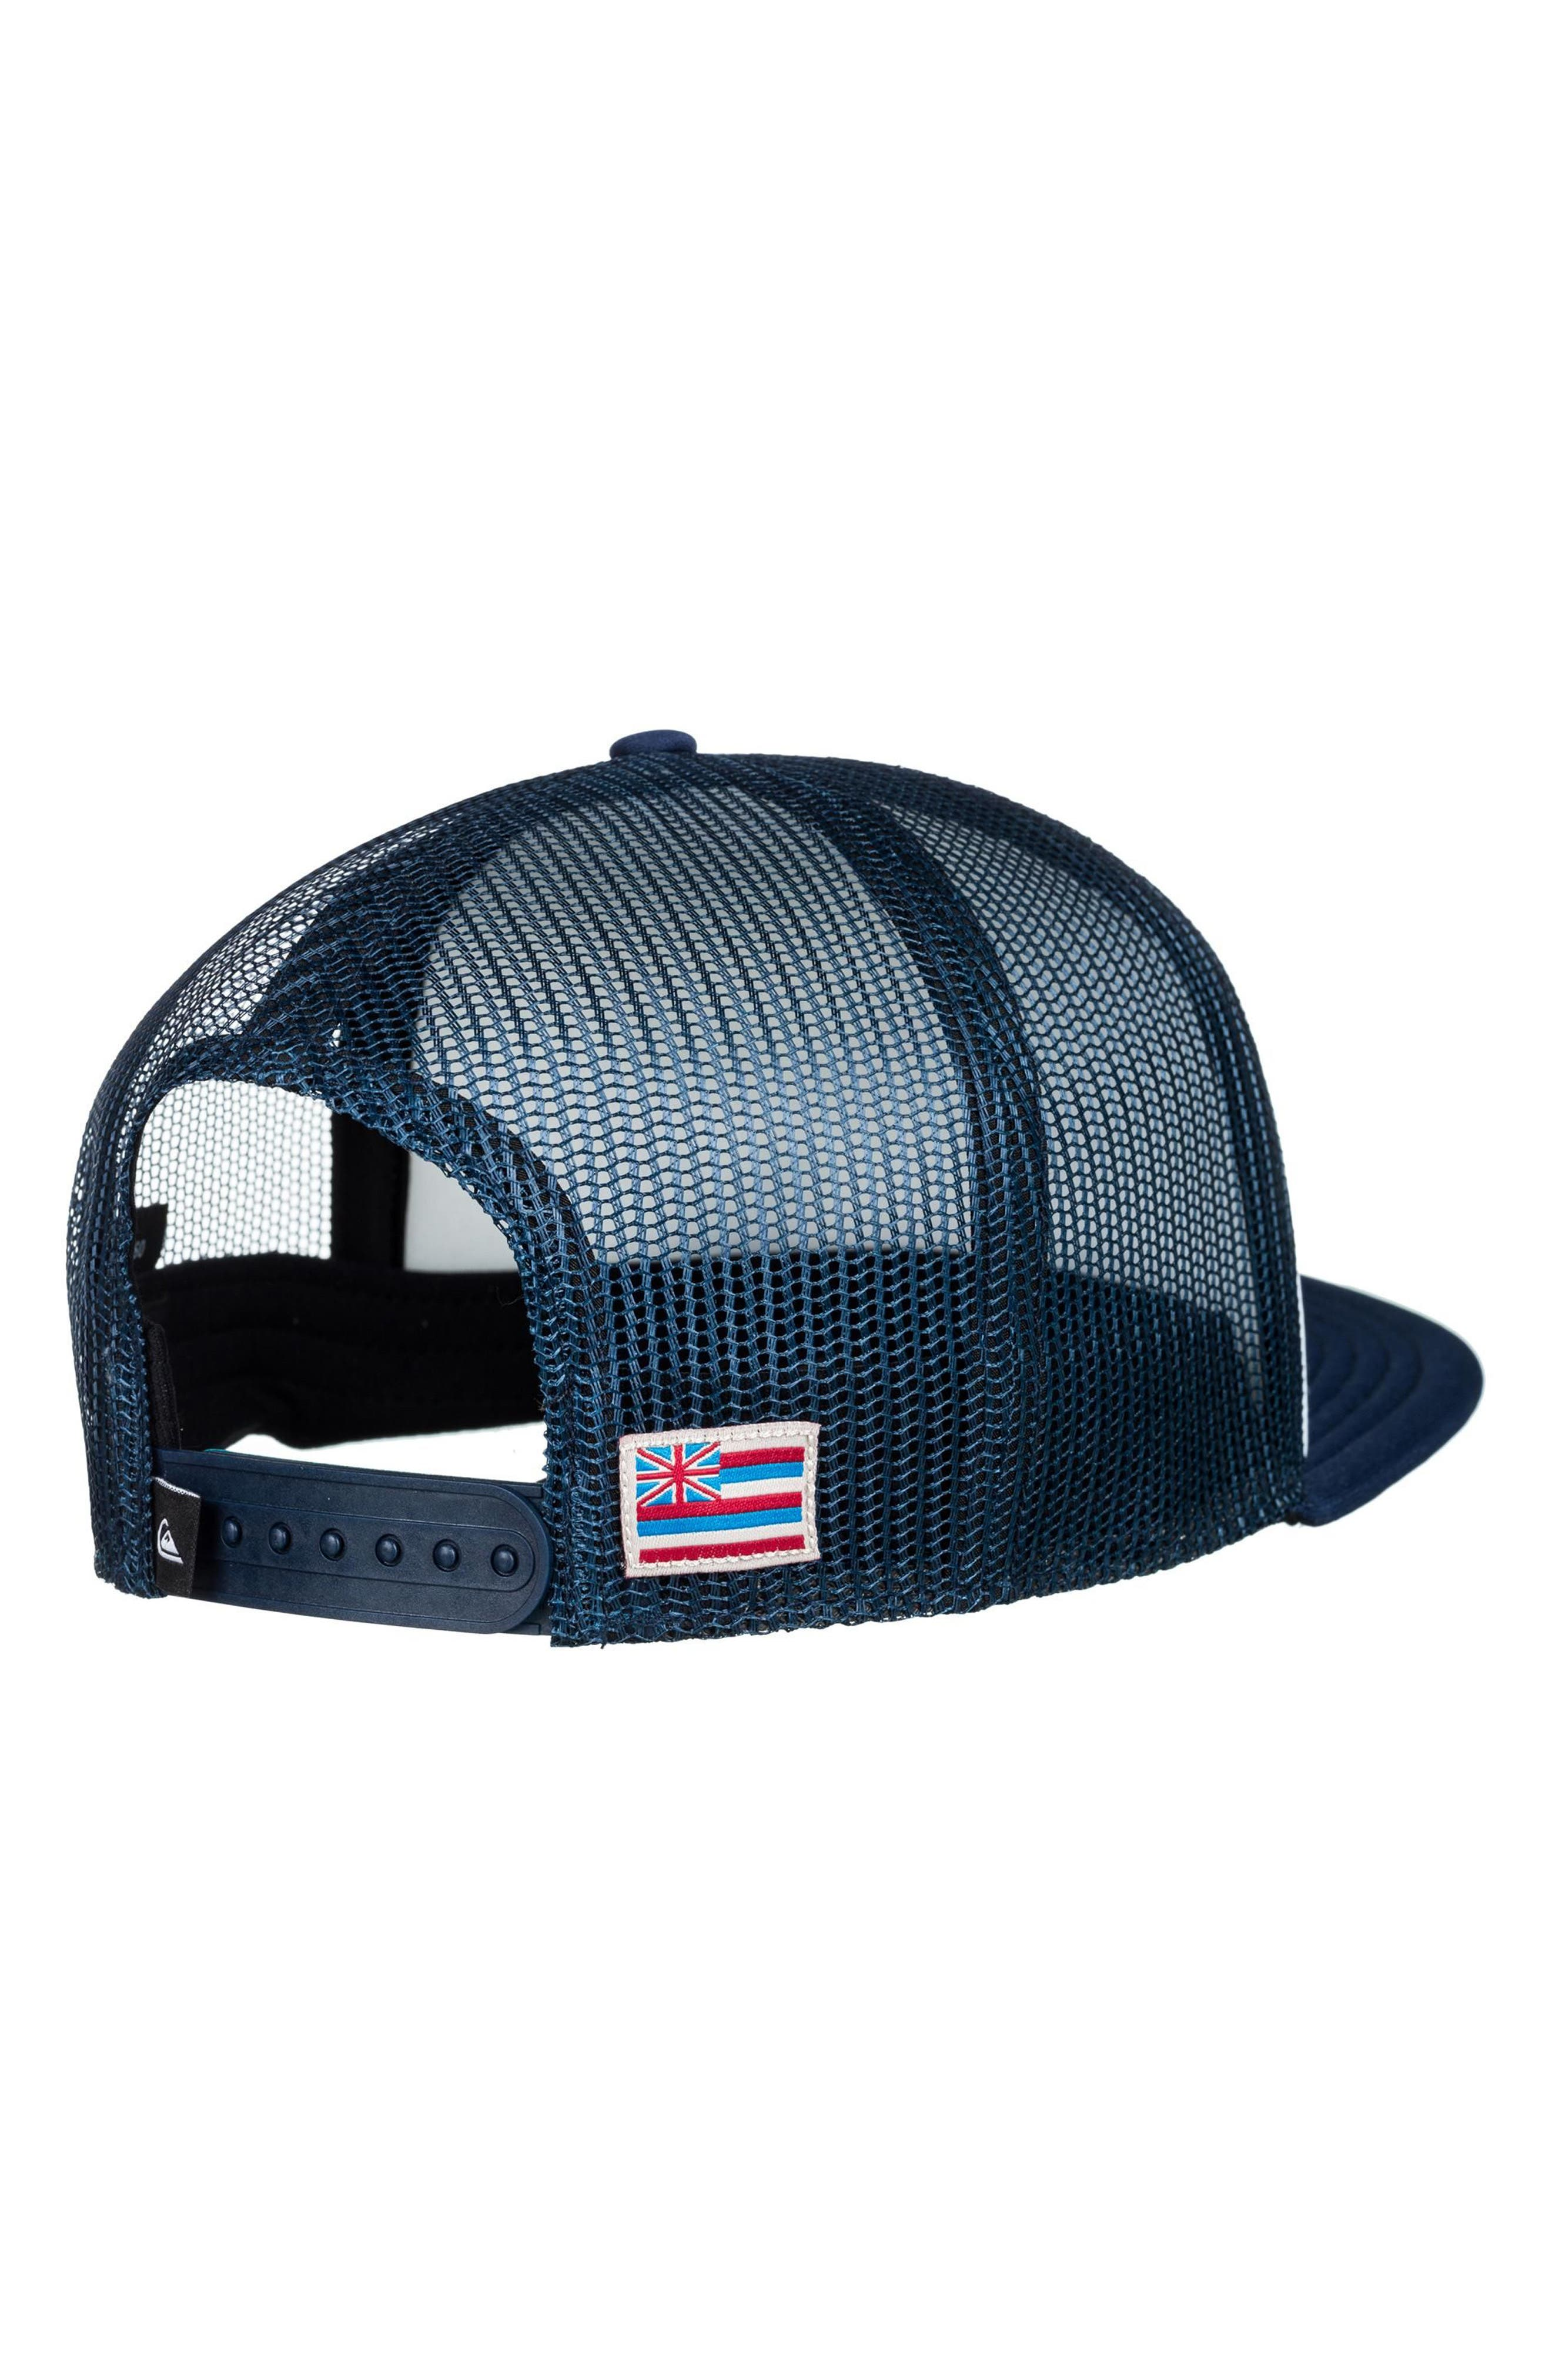 Rooster Graphic Trucker Hat,                             Alternate thumbnail 2, color,                             White